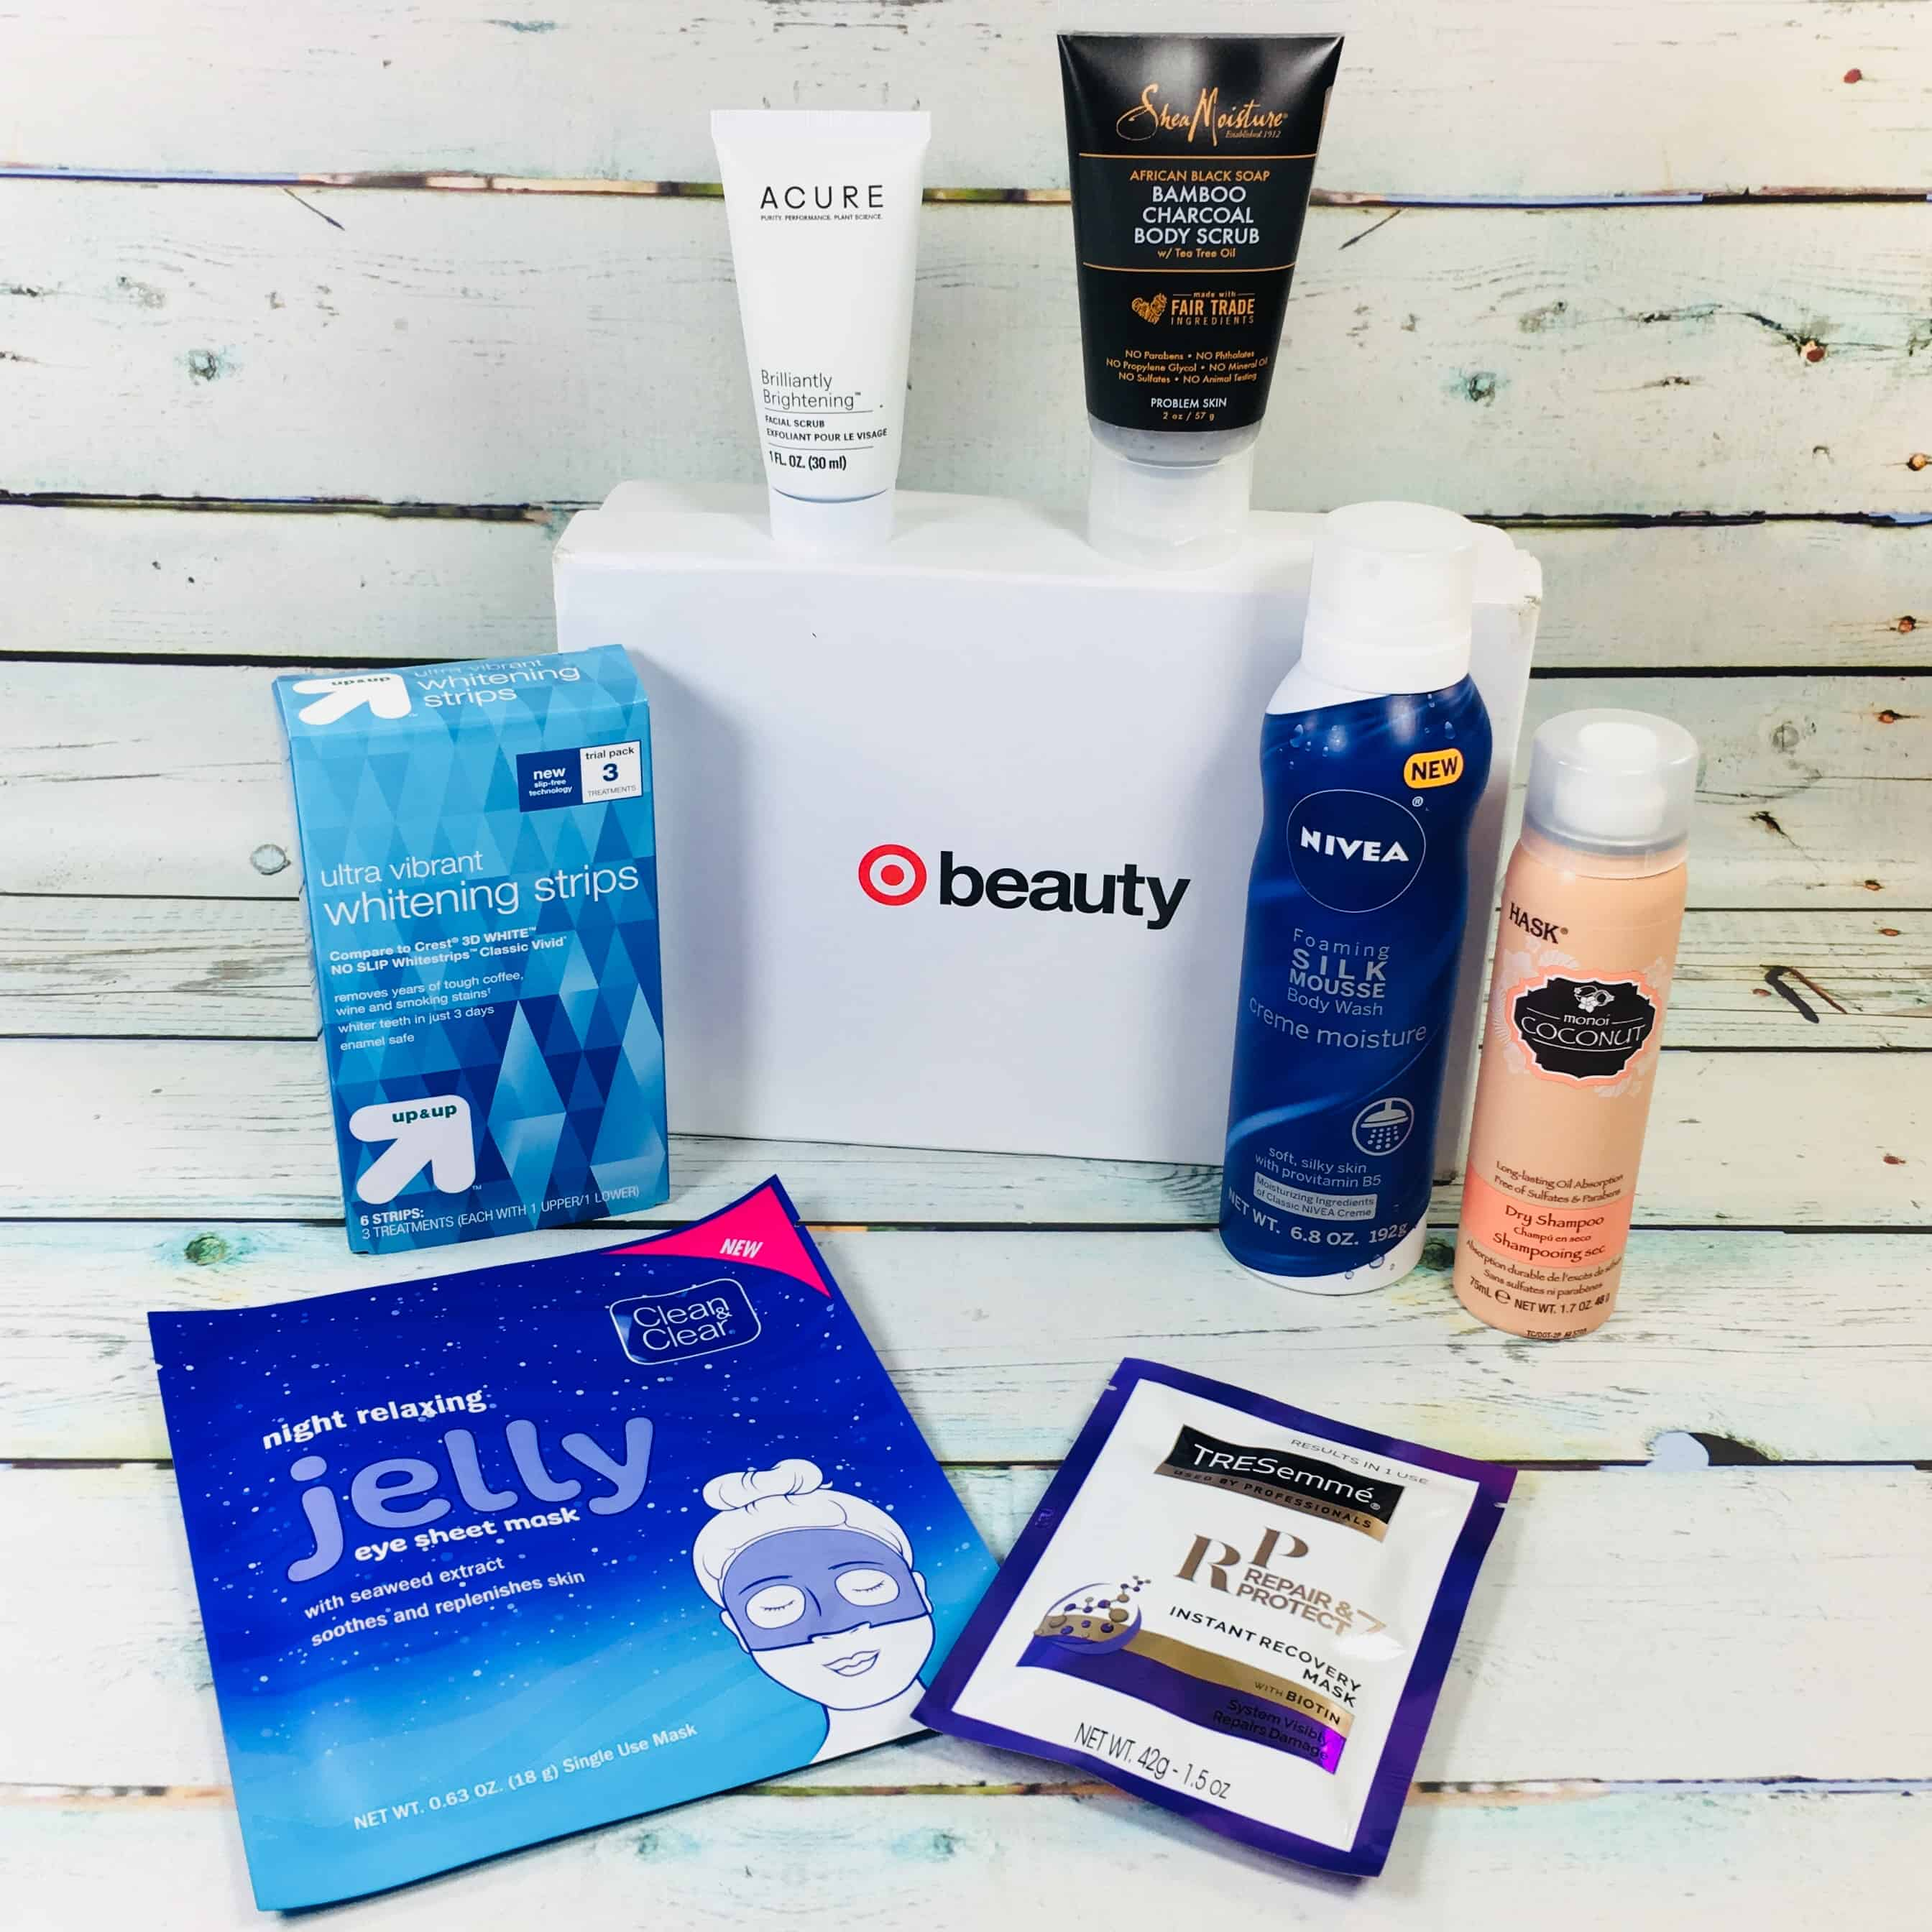 Target Beauty Box Review July 2018 - HELLO REJUVENATION